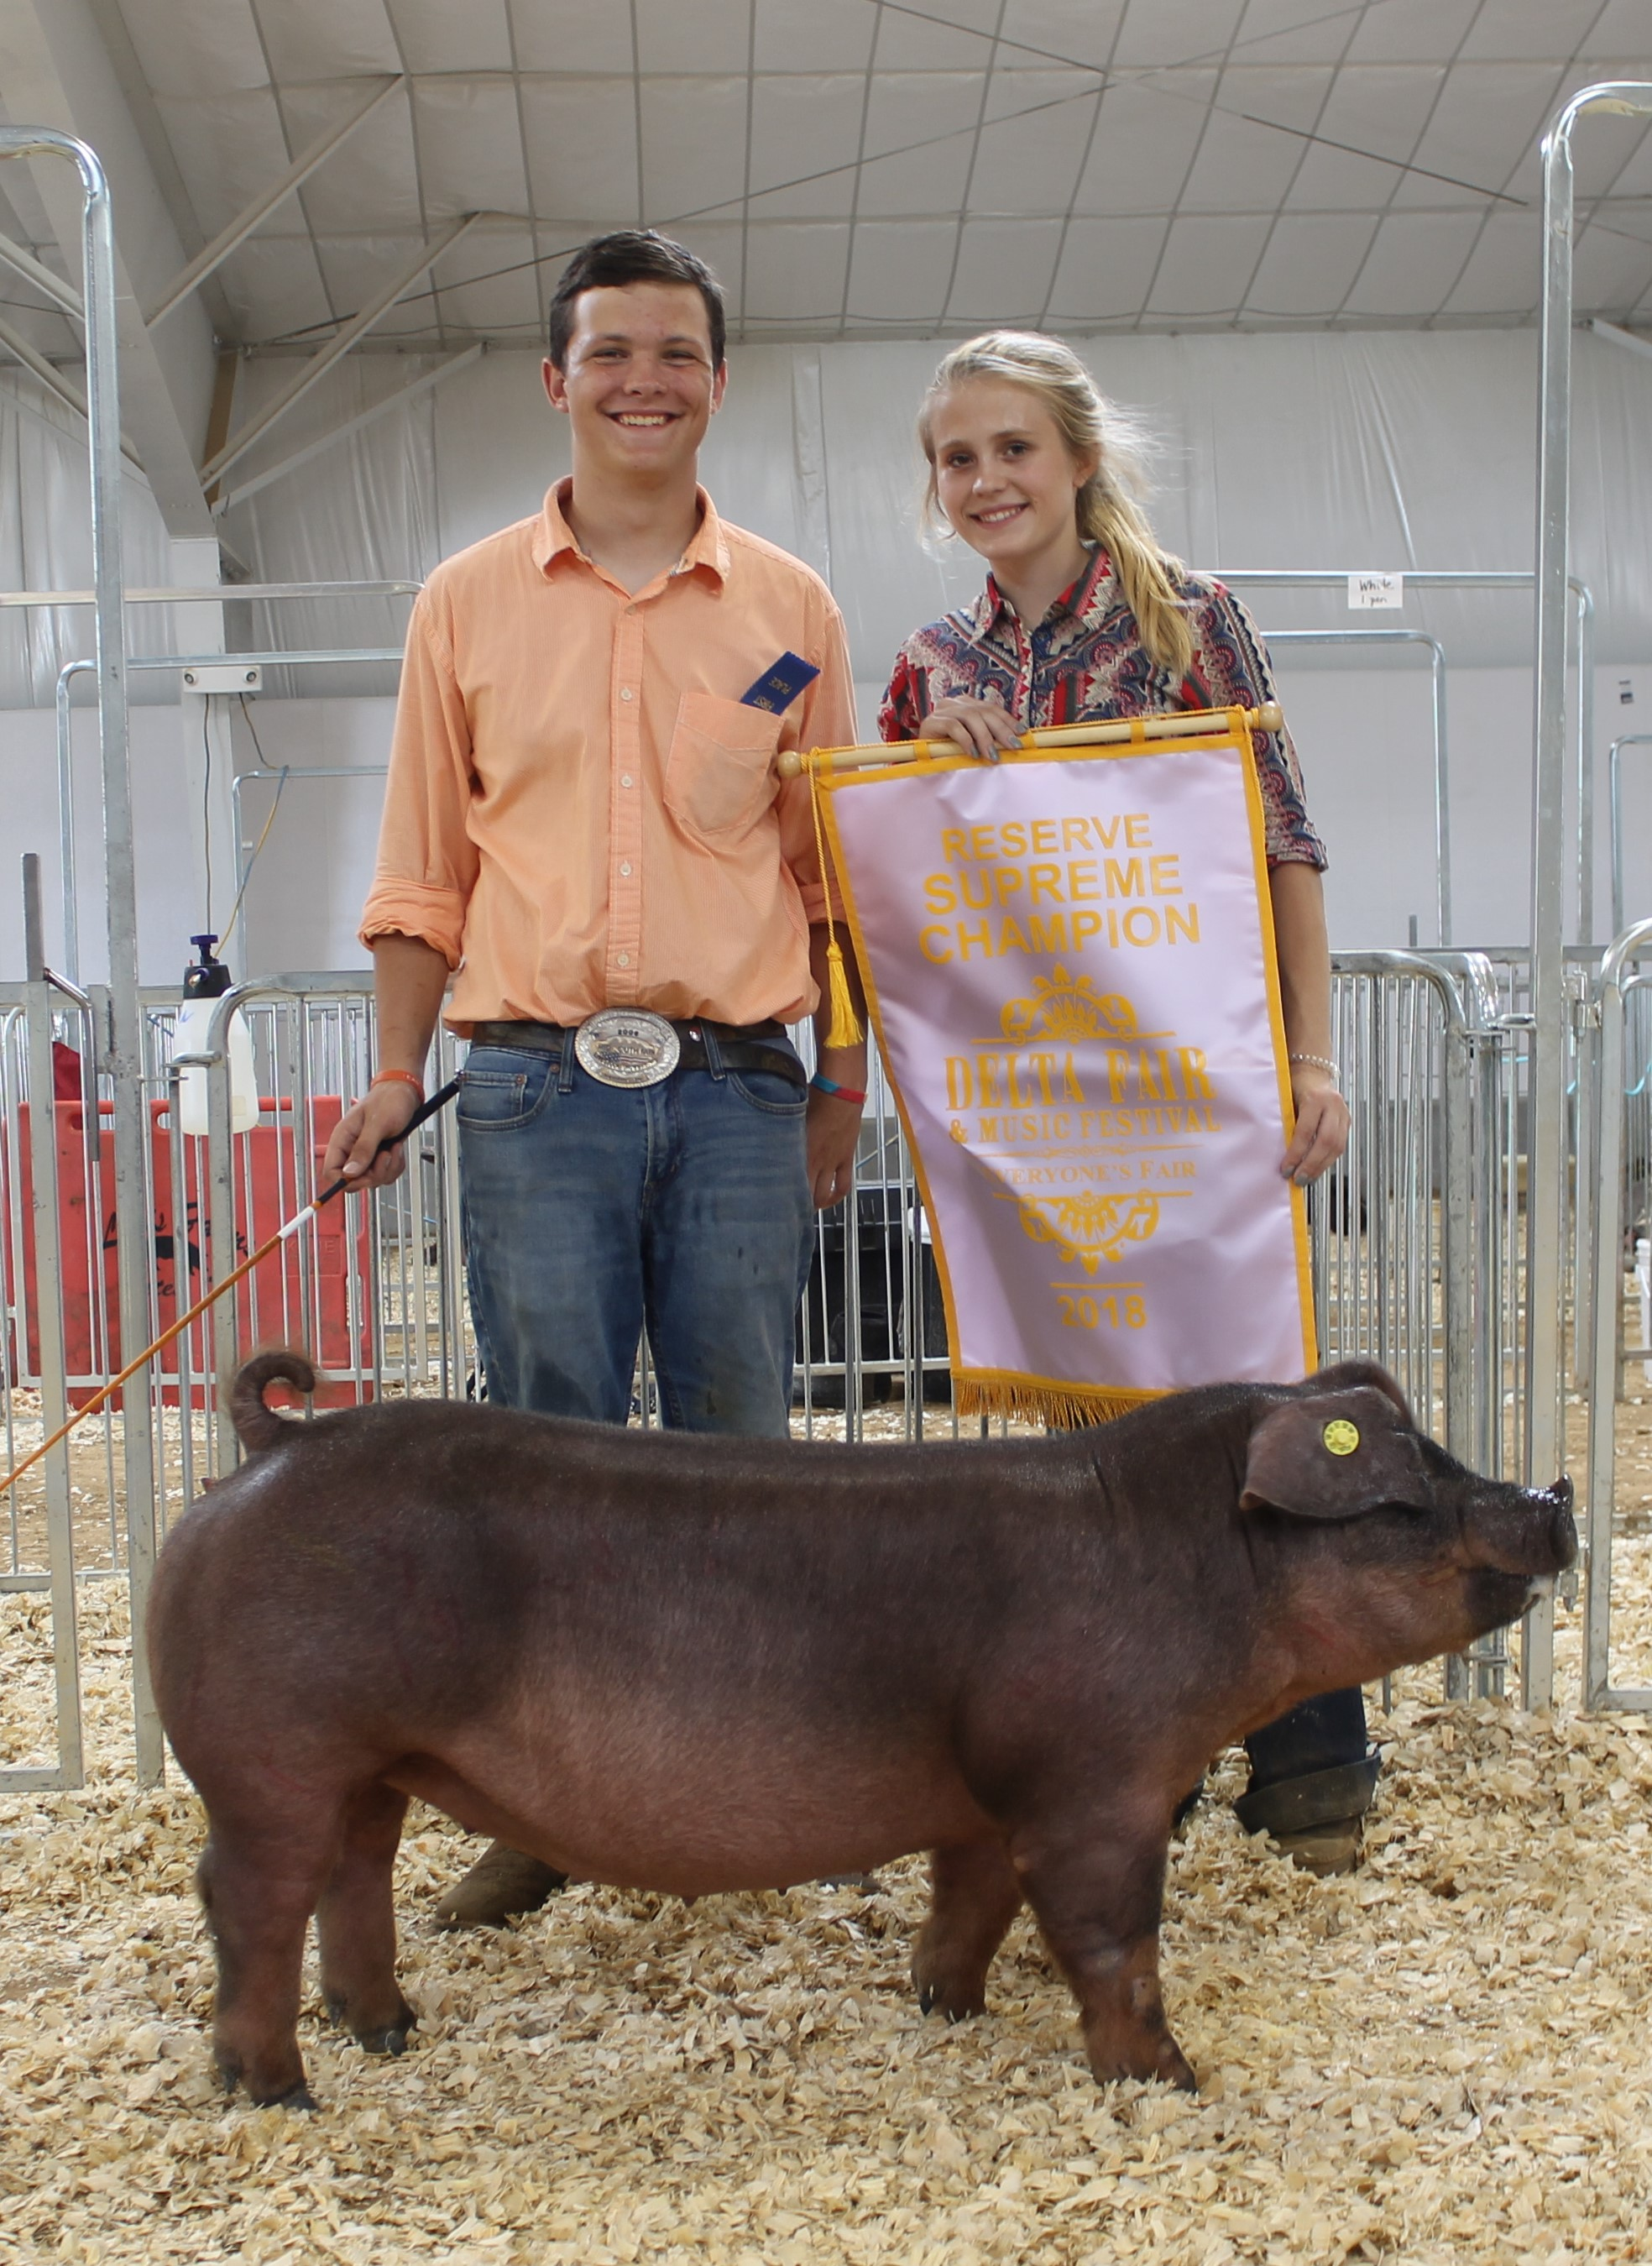 Hunter Curland and Hailey Azbill 2018 Delta Fair & Music Festival Reserve Supreme Champion Overall Champion Duroc Gilt